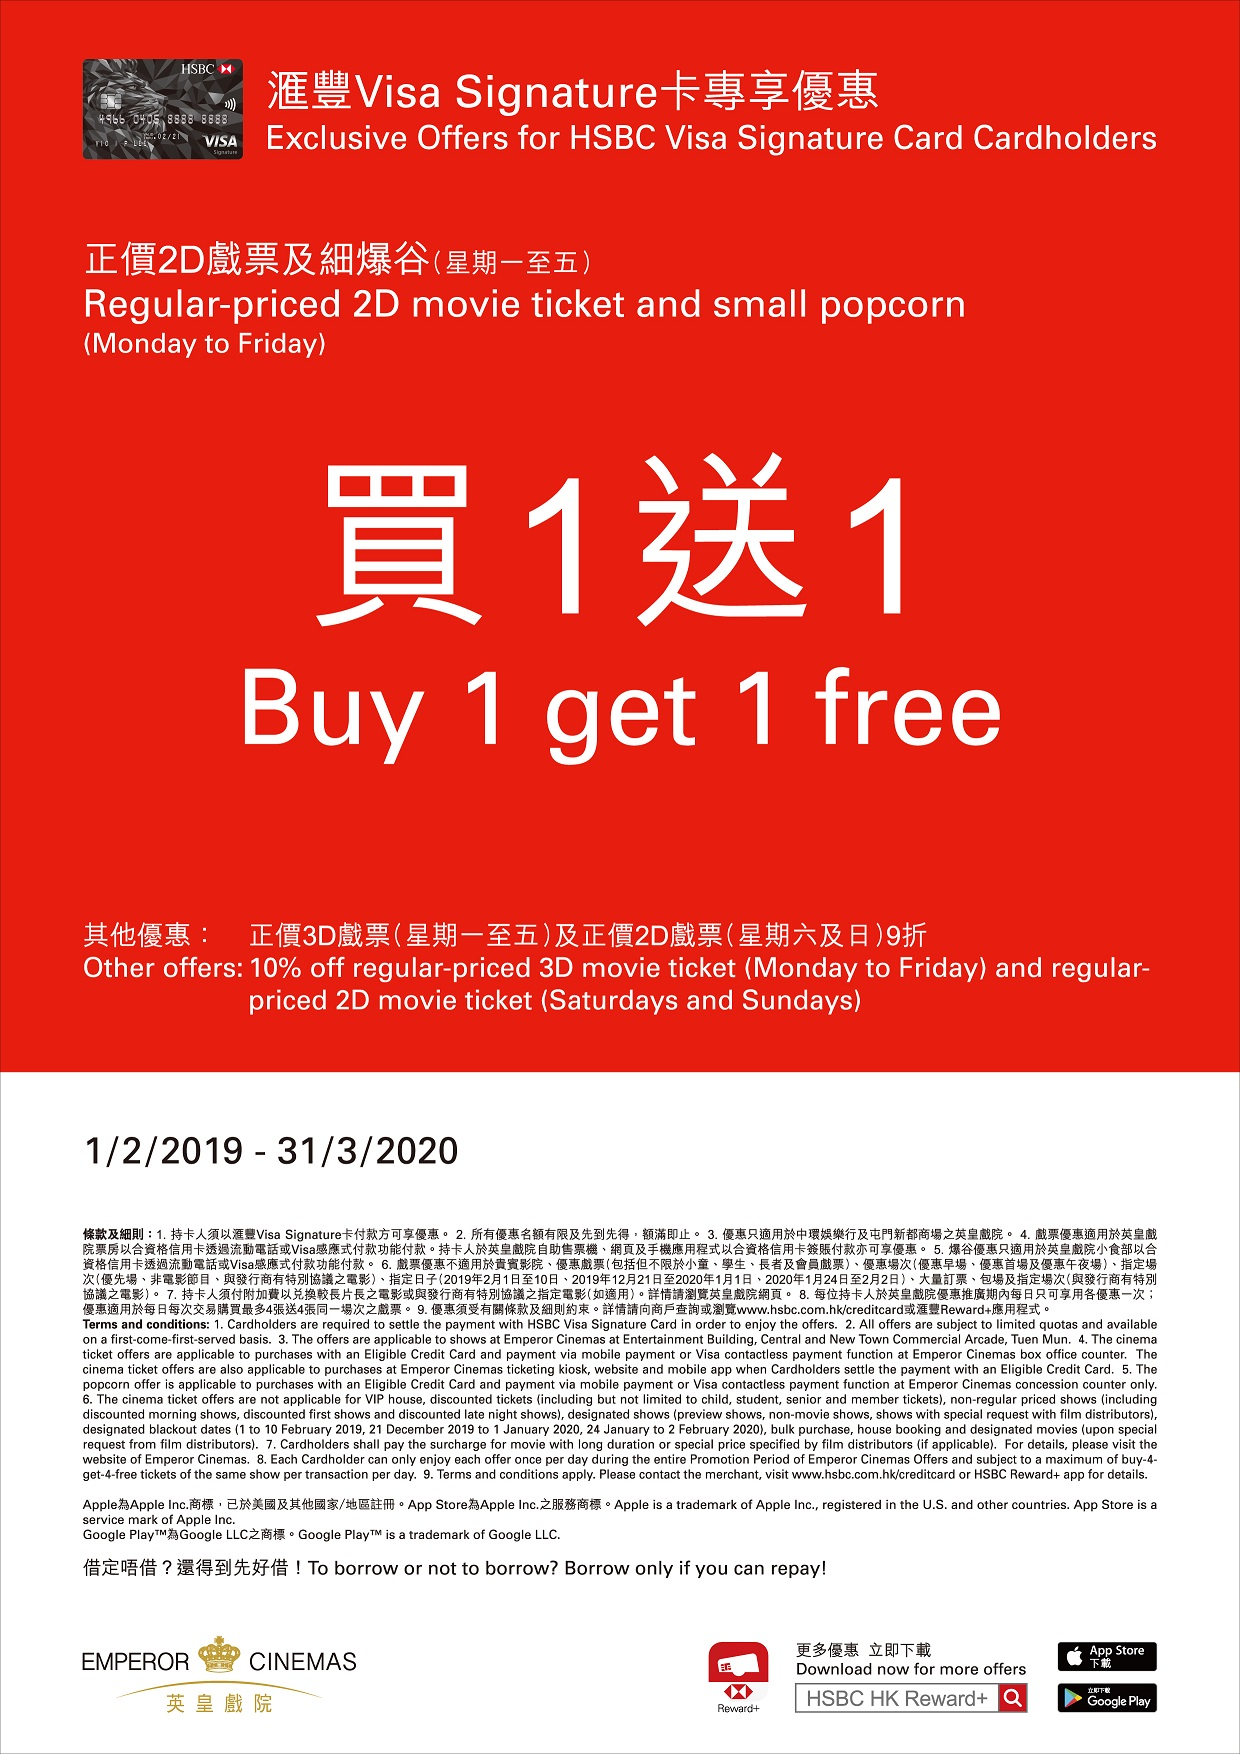 HSBC Visa Signature Card Exclusive Offers